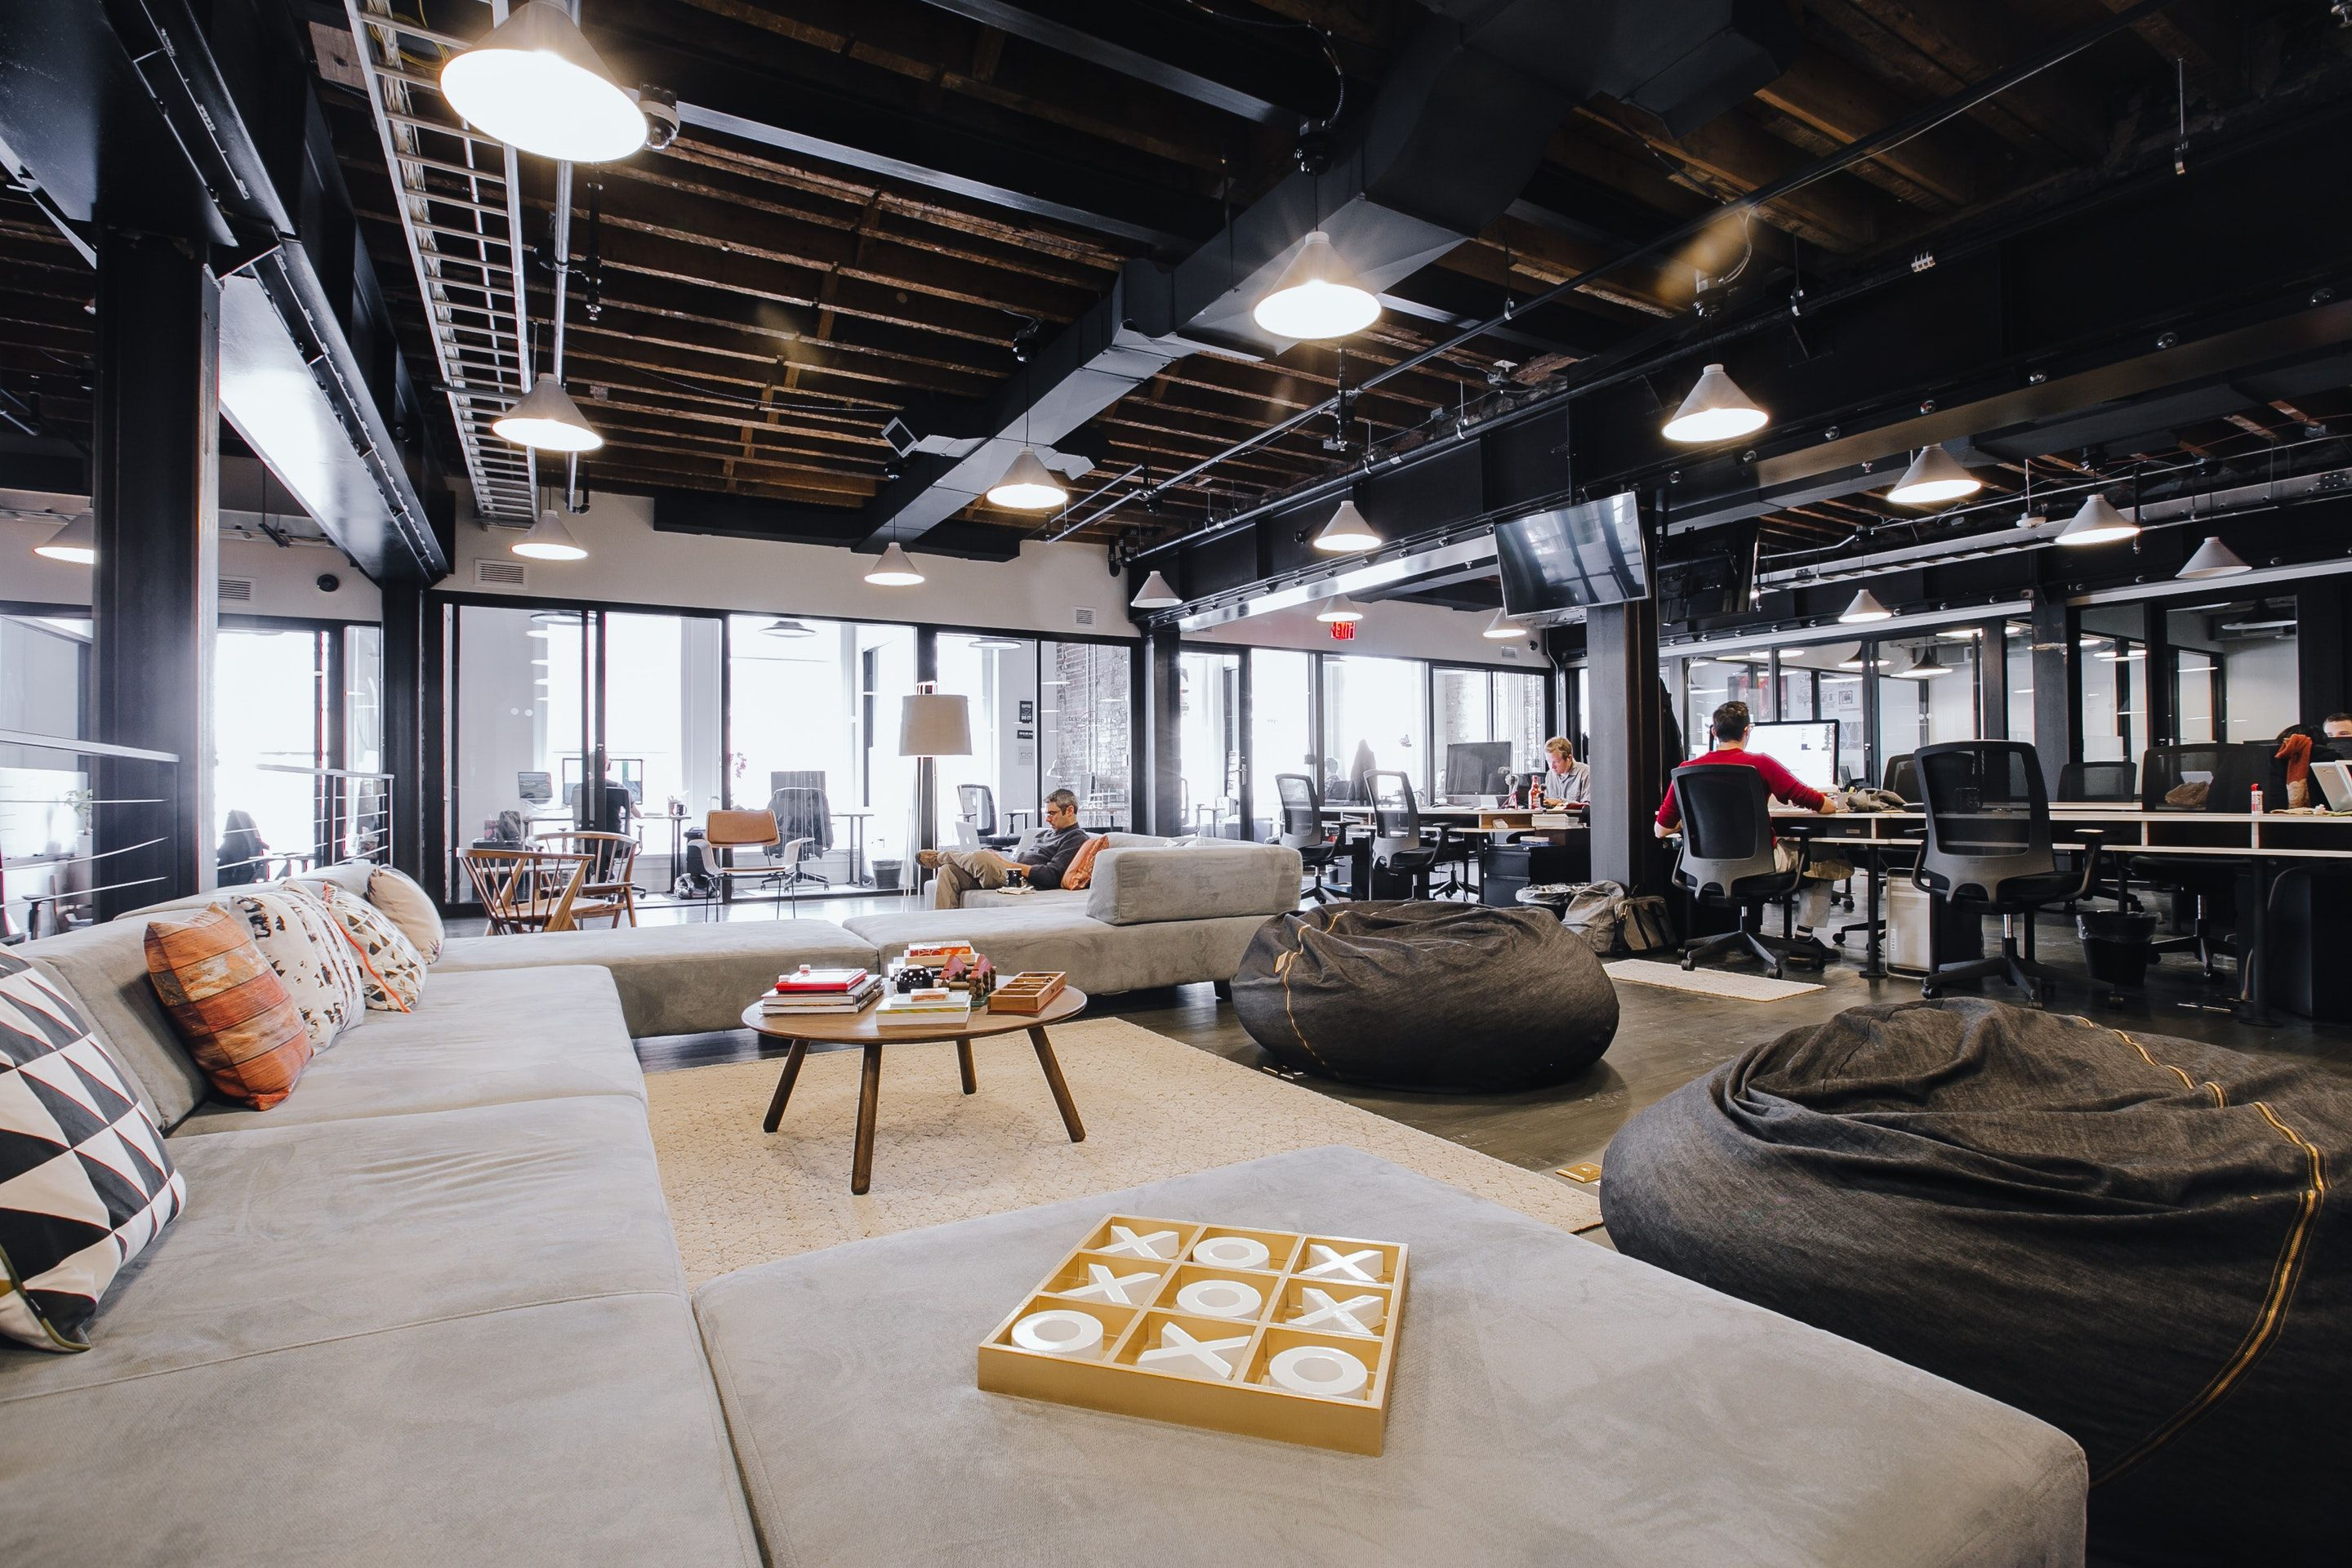 718 7th Street Nw Chinatown Dc Coworking Space Wework Office Space Inspiration Coworking Space Coworking